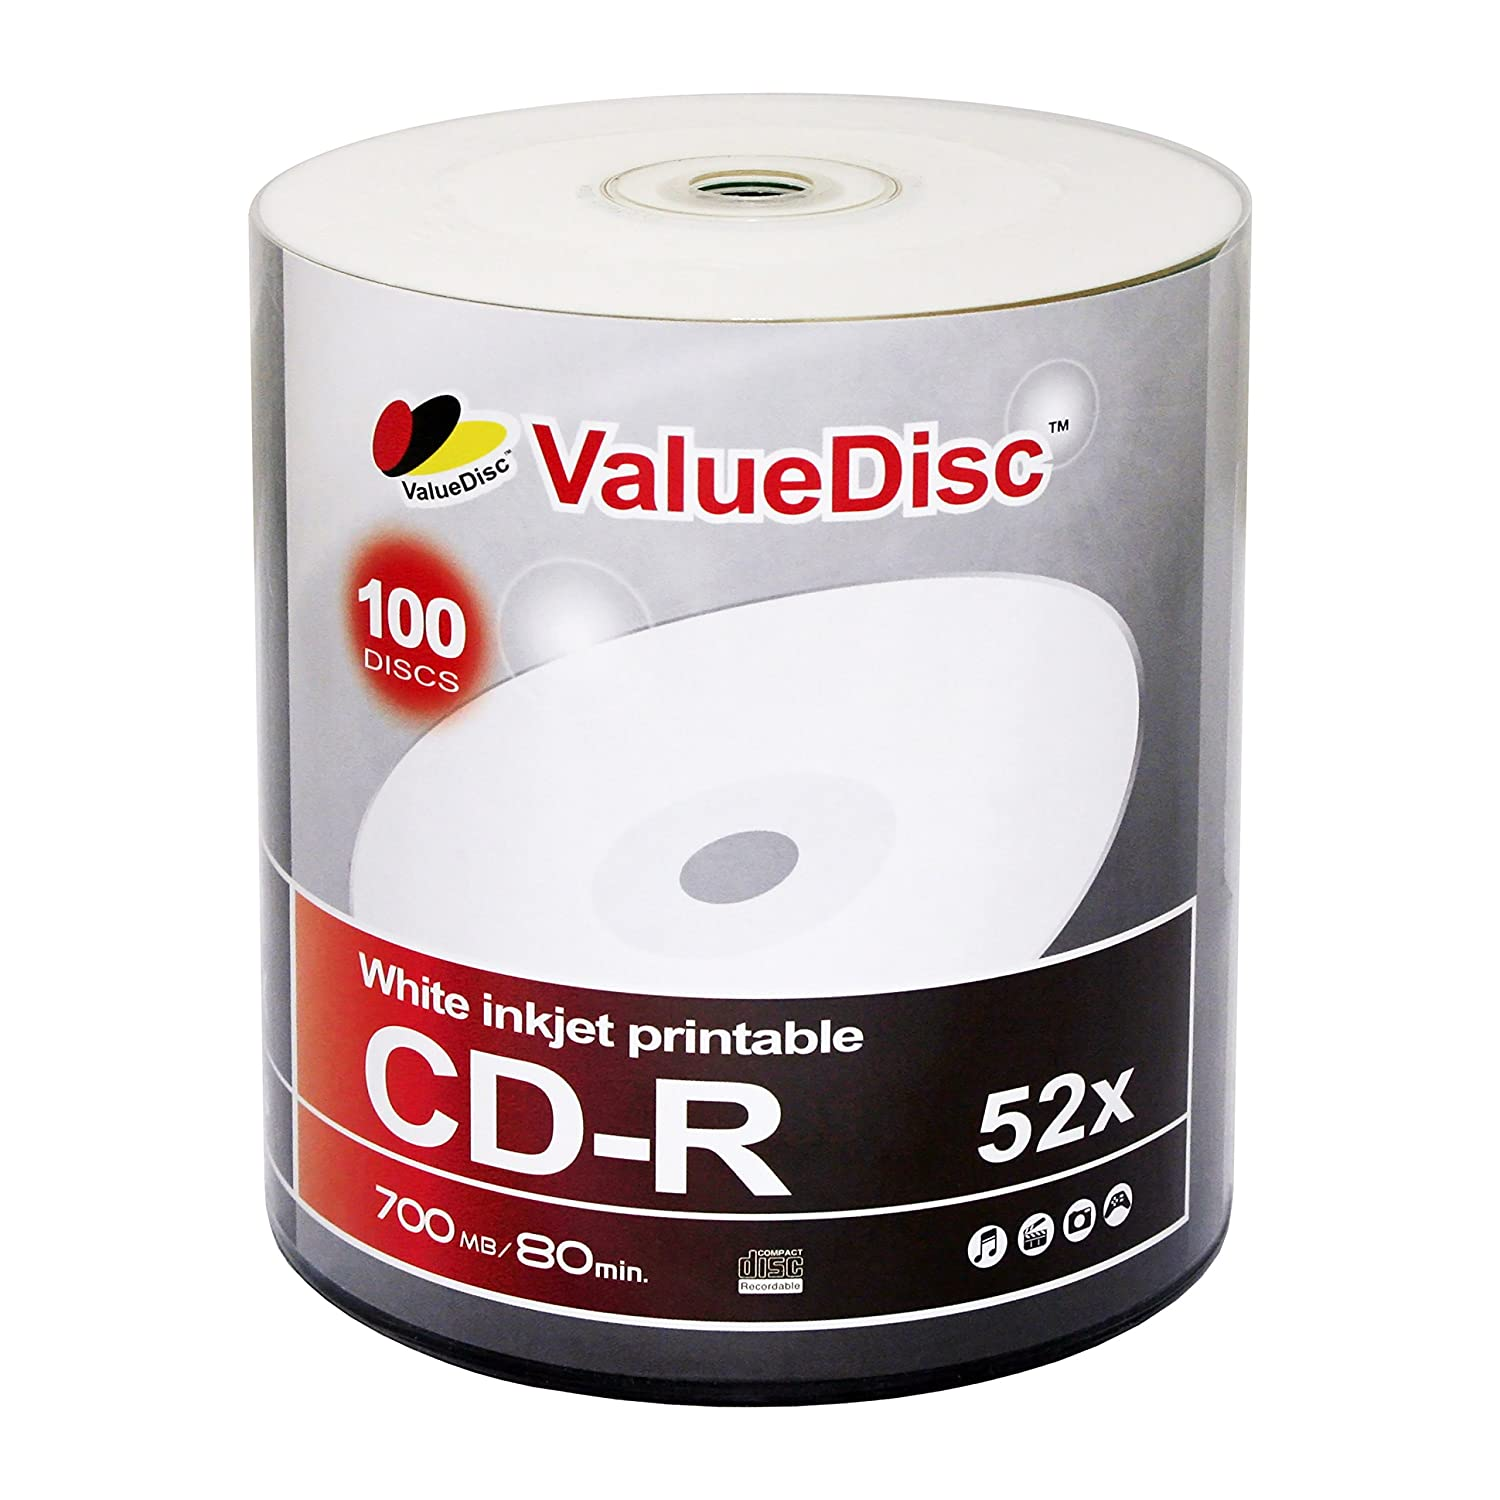 Value Disc CD-R 80min 700MB 52X White Inkjet Printable 100 Pack VDCDIP100DW